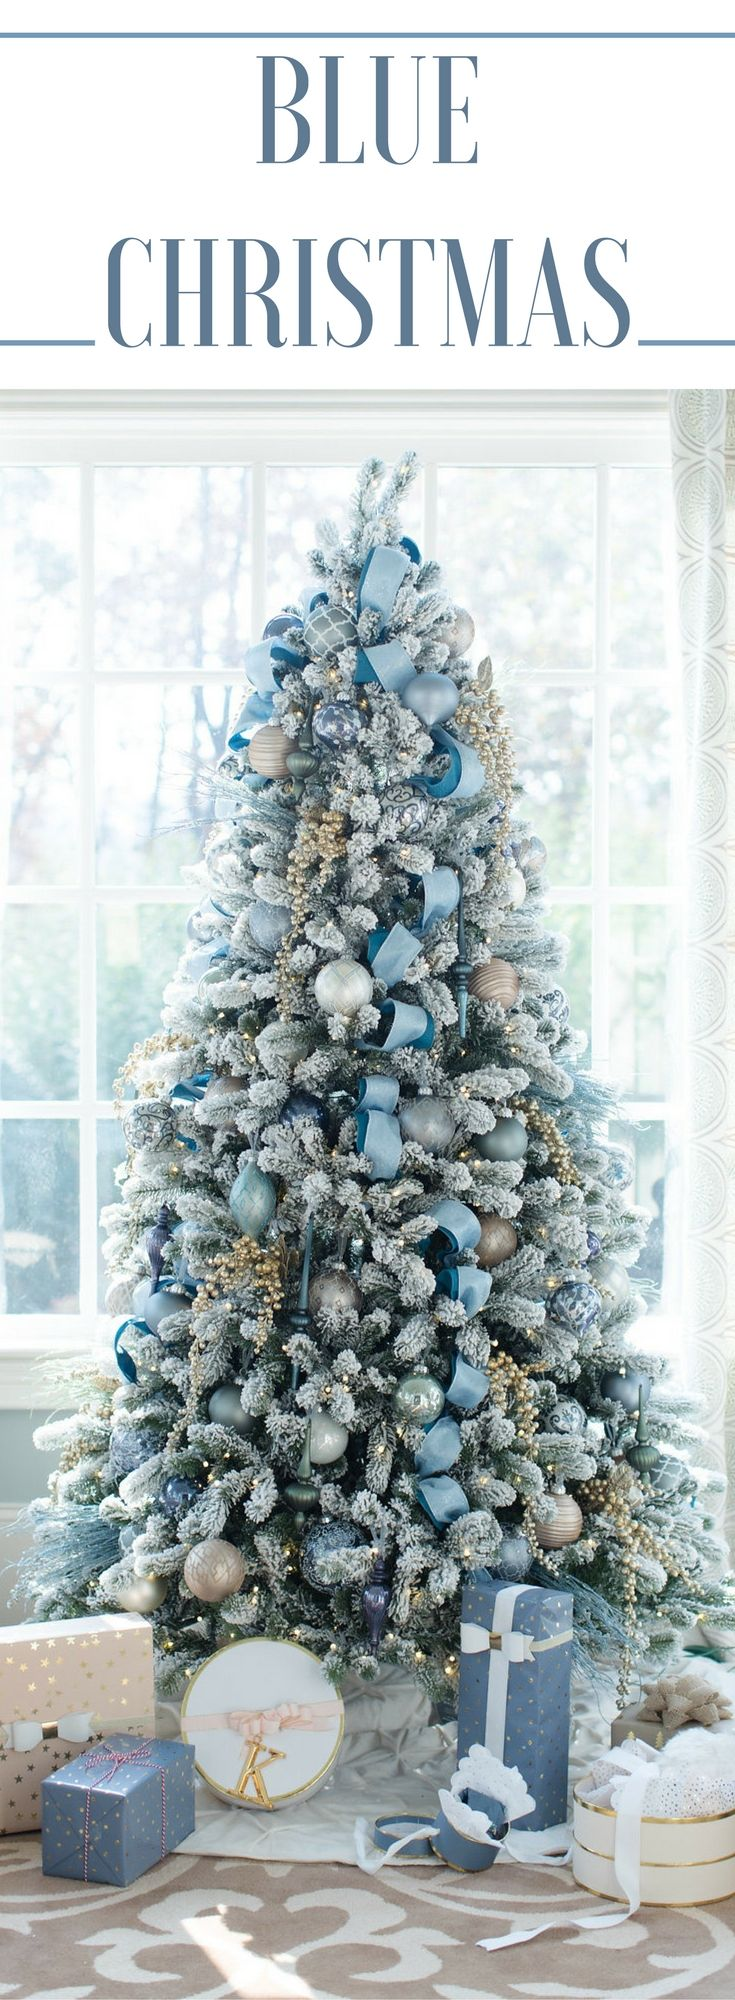 Blue christmas trees decorating ideas - Blue Christmas Decorating Ideas A Tour Of Our Home